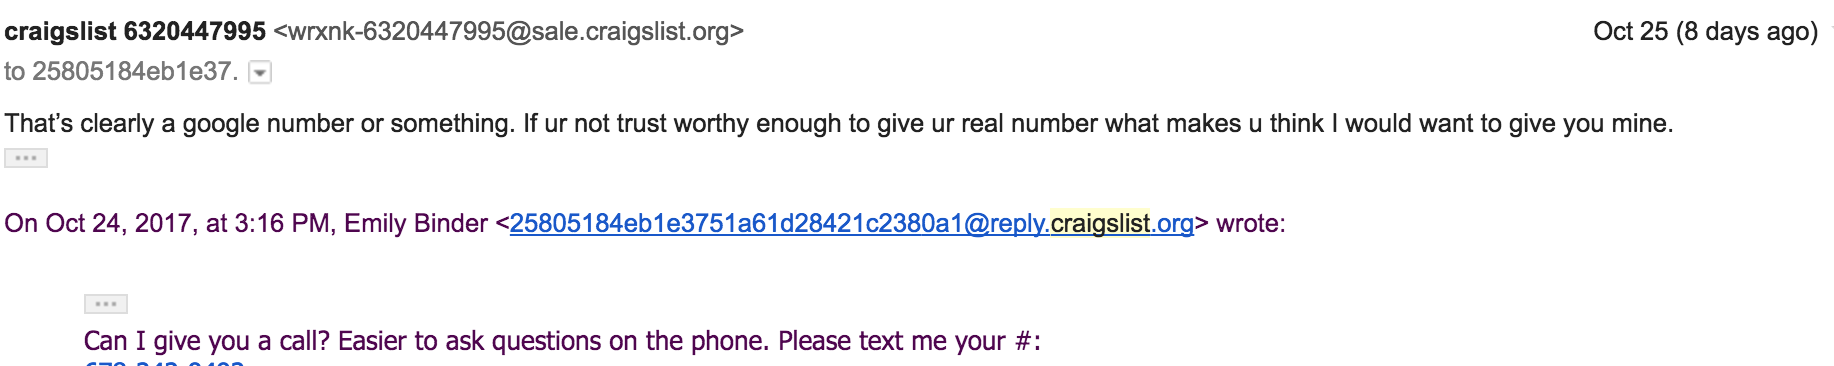 screenshot of rude Craigslist email